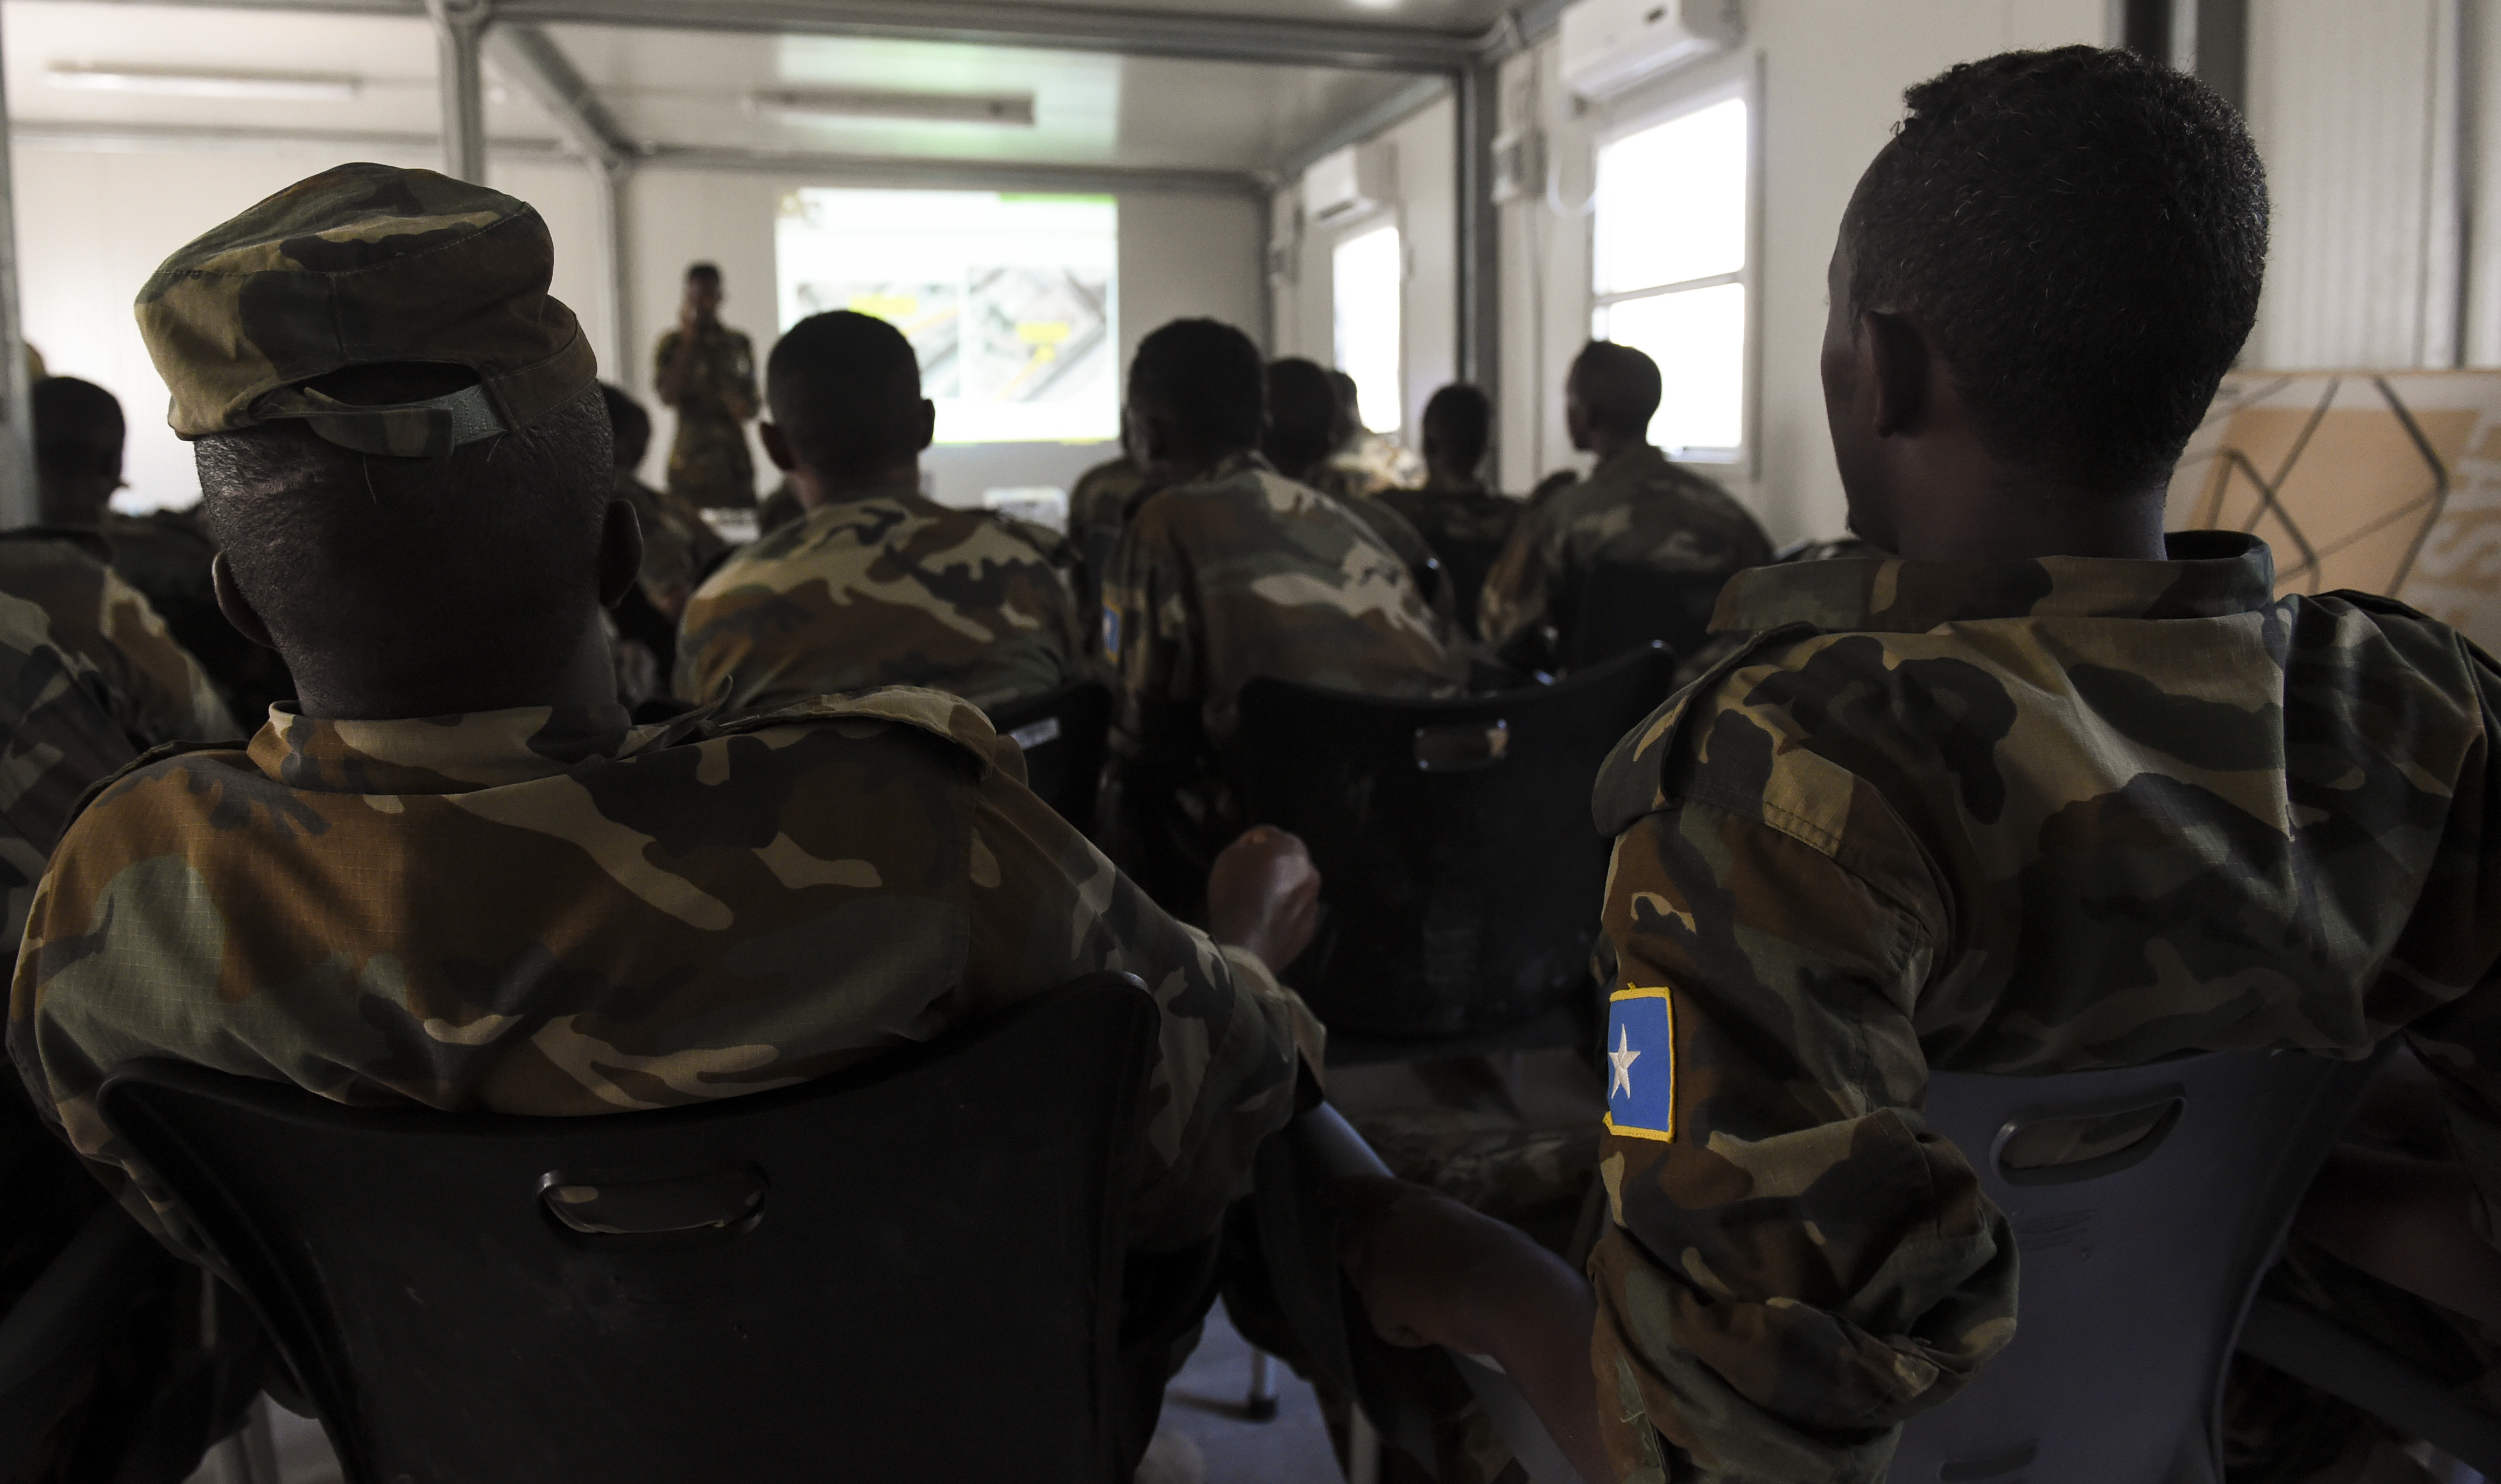 U.S. Army 101st Airborne Division soldiers deployed with U.S. Army Forces Africa, train Somali National Army soldiers May 22, 2017, in Mogadishu, Somalia. The logistics course focused on various aspects of moving personnel, equipment and supplies. (U.S. Air Force photo by Staff Sgt. Nicholas M. Byers)